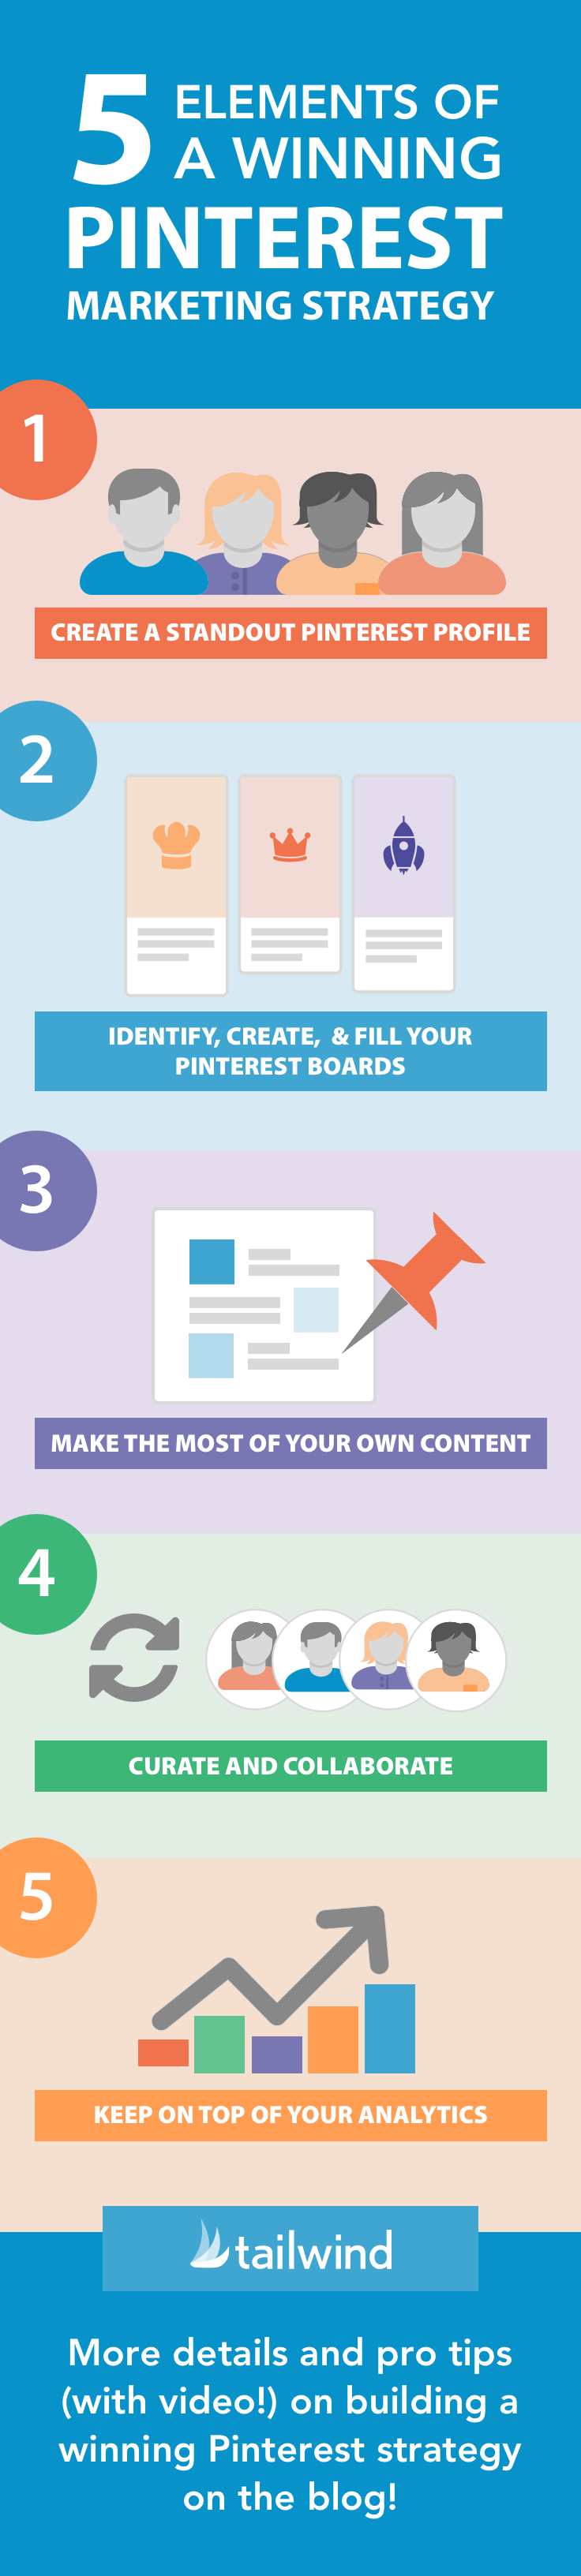 Create a winning Pinterest strategy with these five elements. Get the mega strategy guide on the blog!